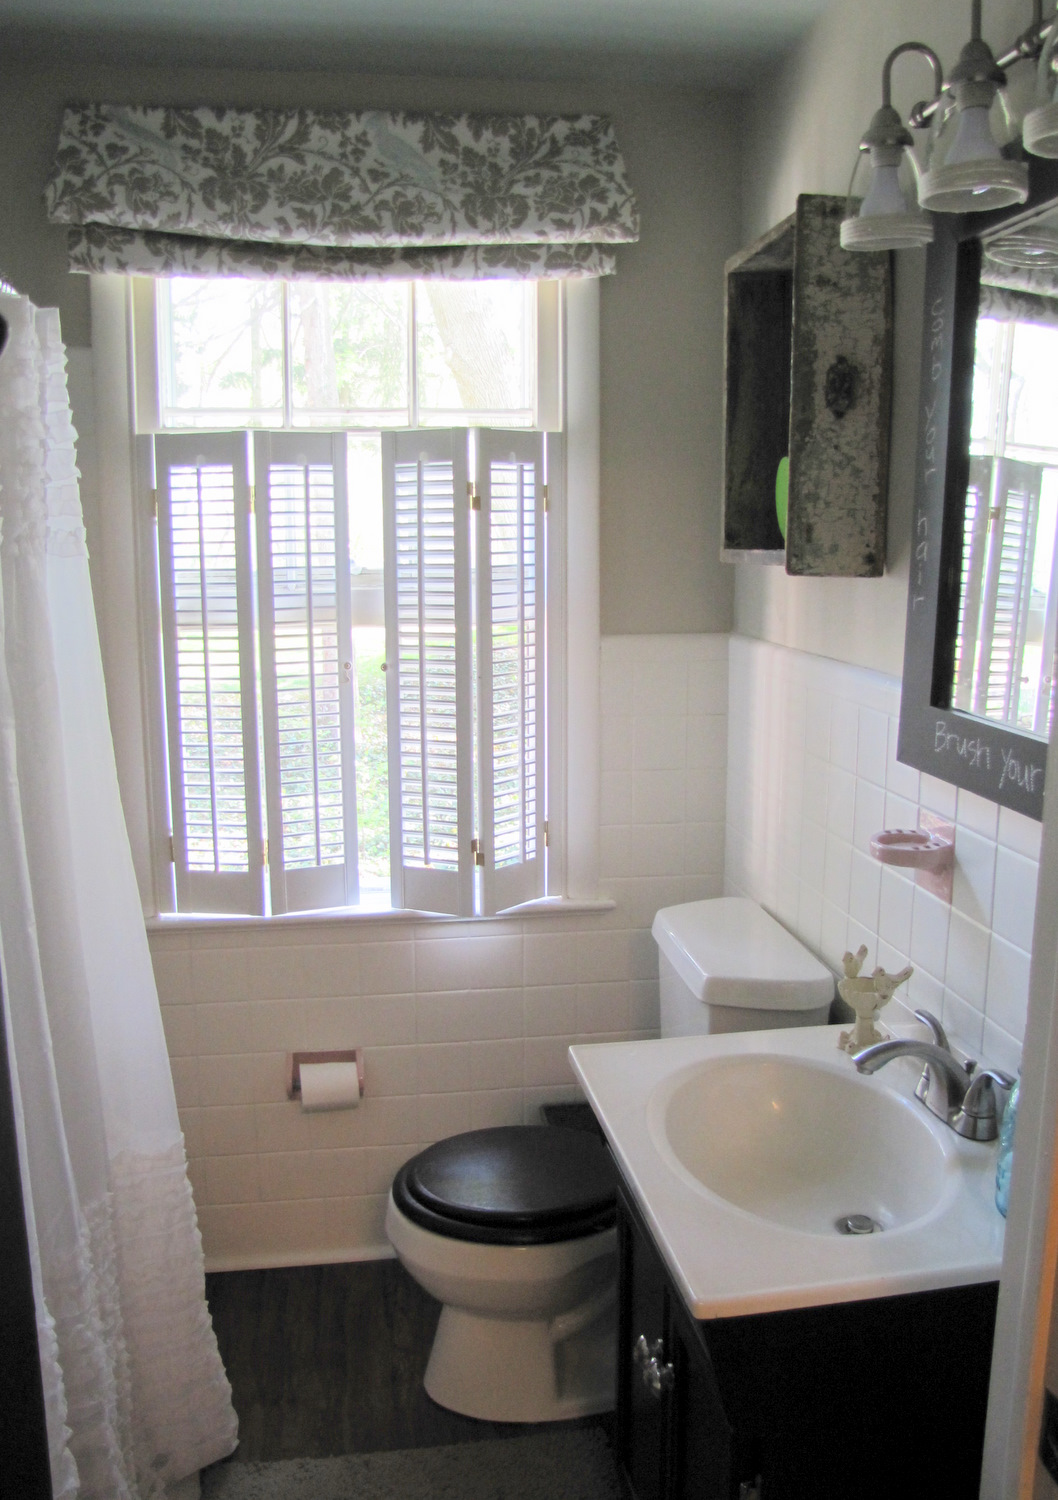 Smoke & Mirrors - A Bathroom Reveal } - The Painted Home by Denise Sabia